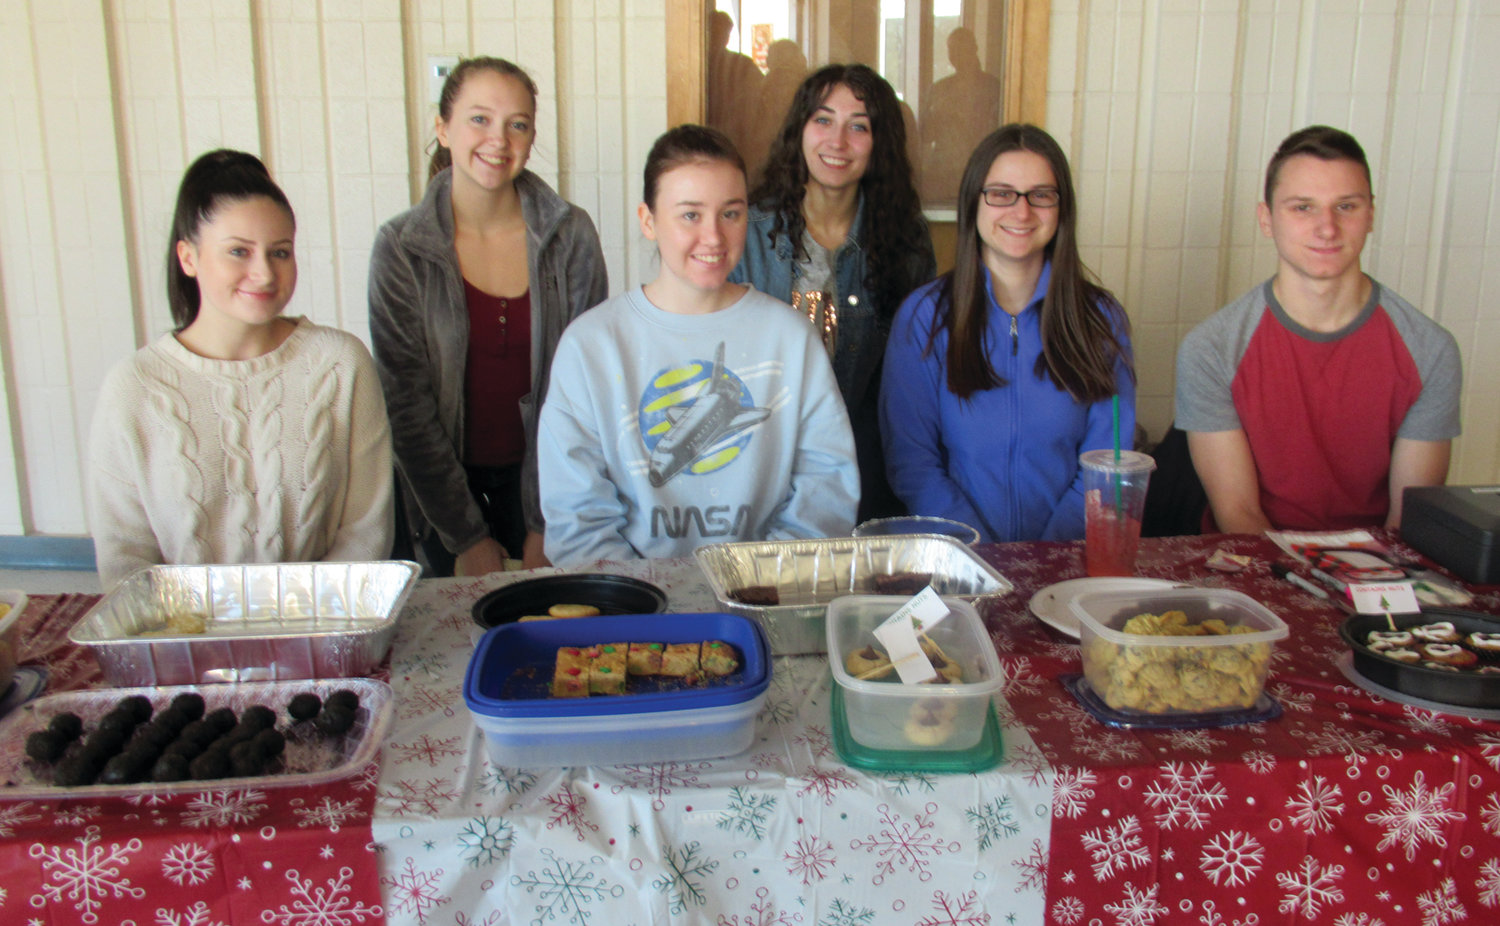 SUPER SENIORS: Students from the class of 2020 set up a special baked goods sale during Saturday's Holly Fair. The included Sarah Valentine, Michaela Healy, Jenni Aubin, Mia Ragosta, Allison Kane and Chris Flanagan.